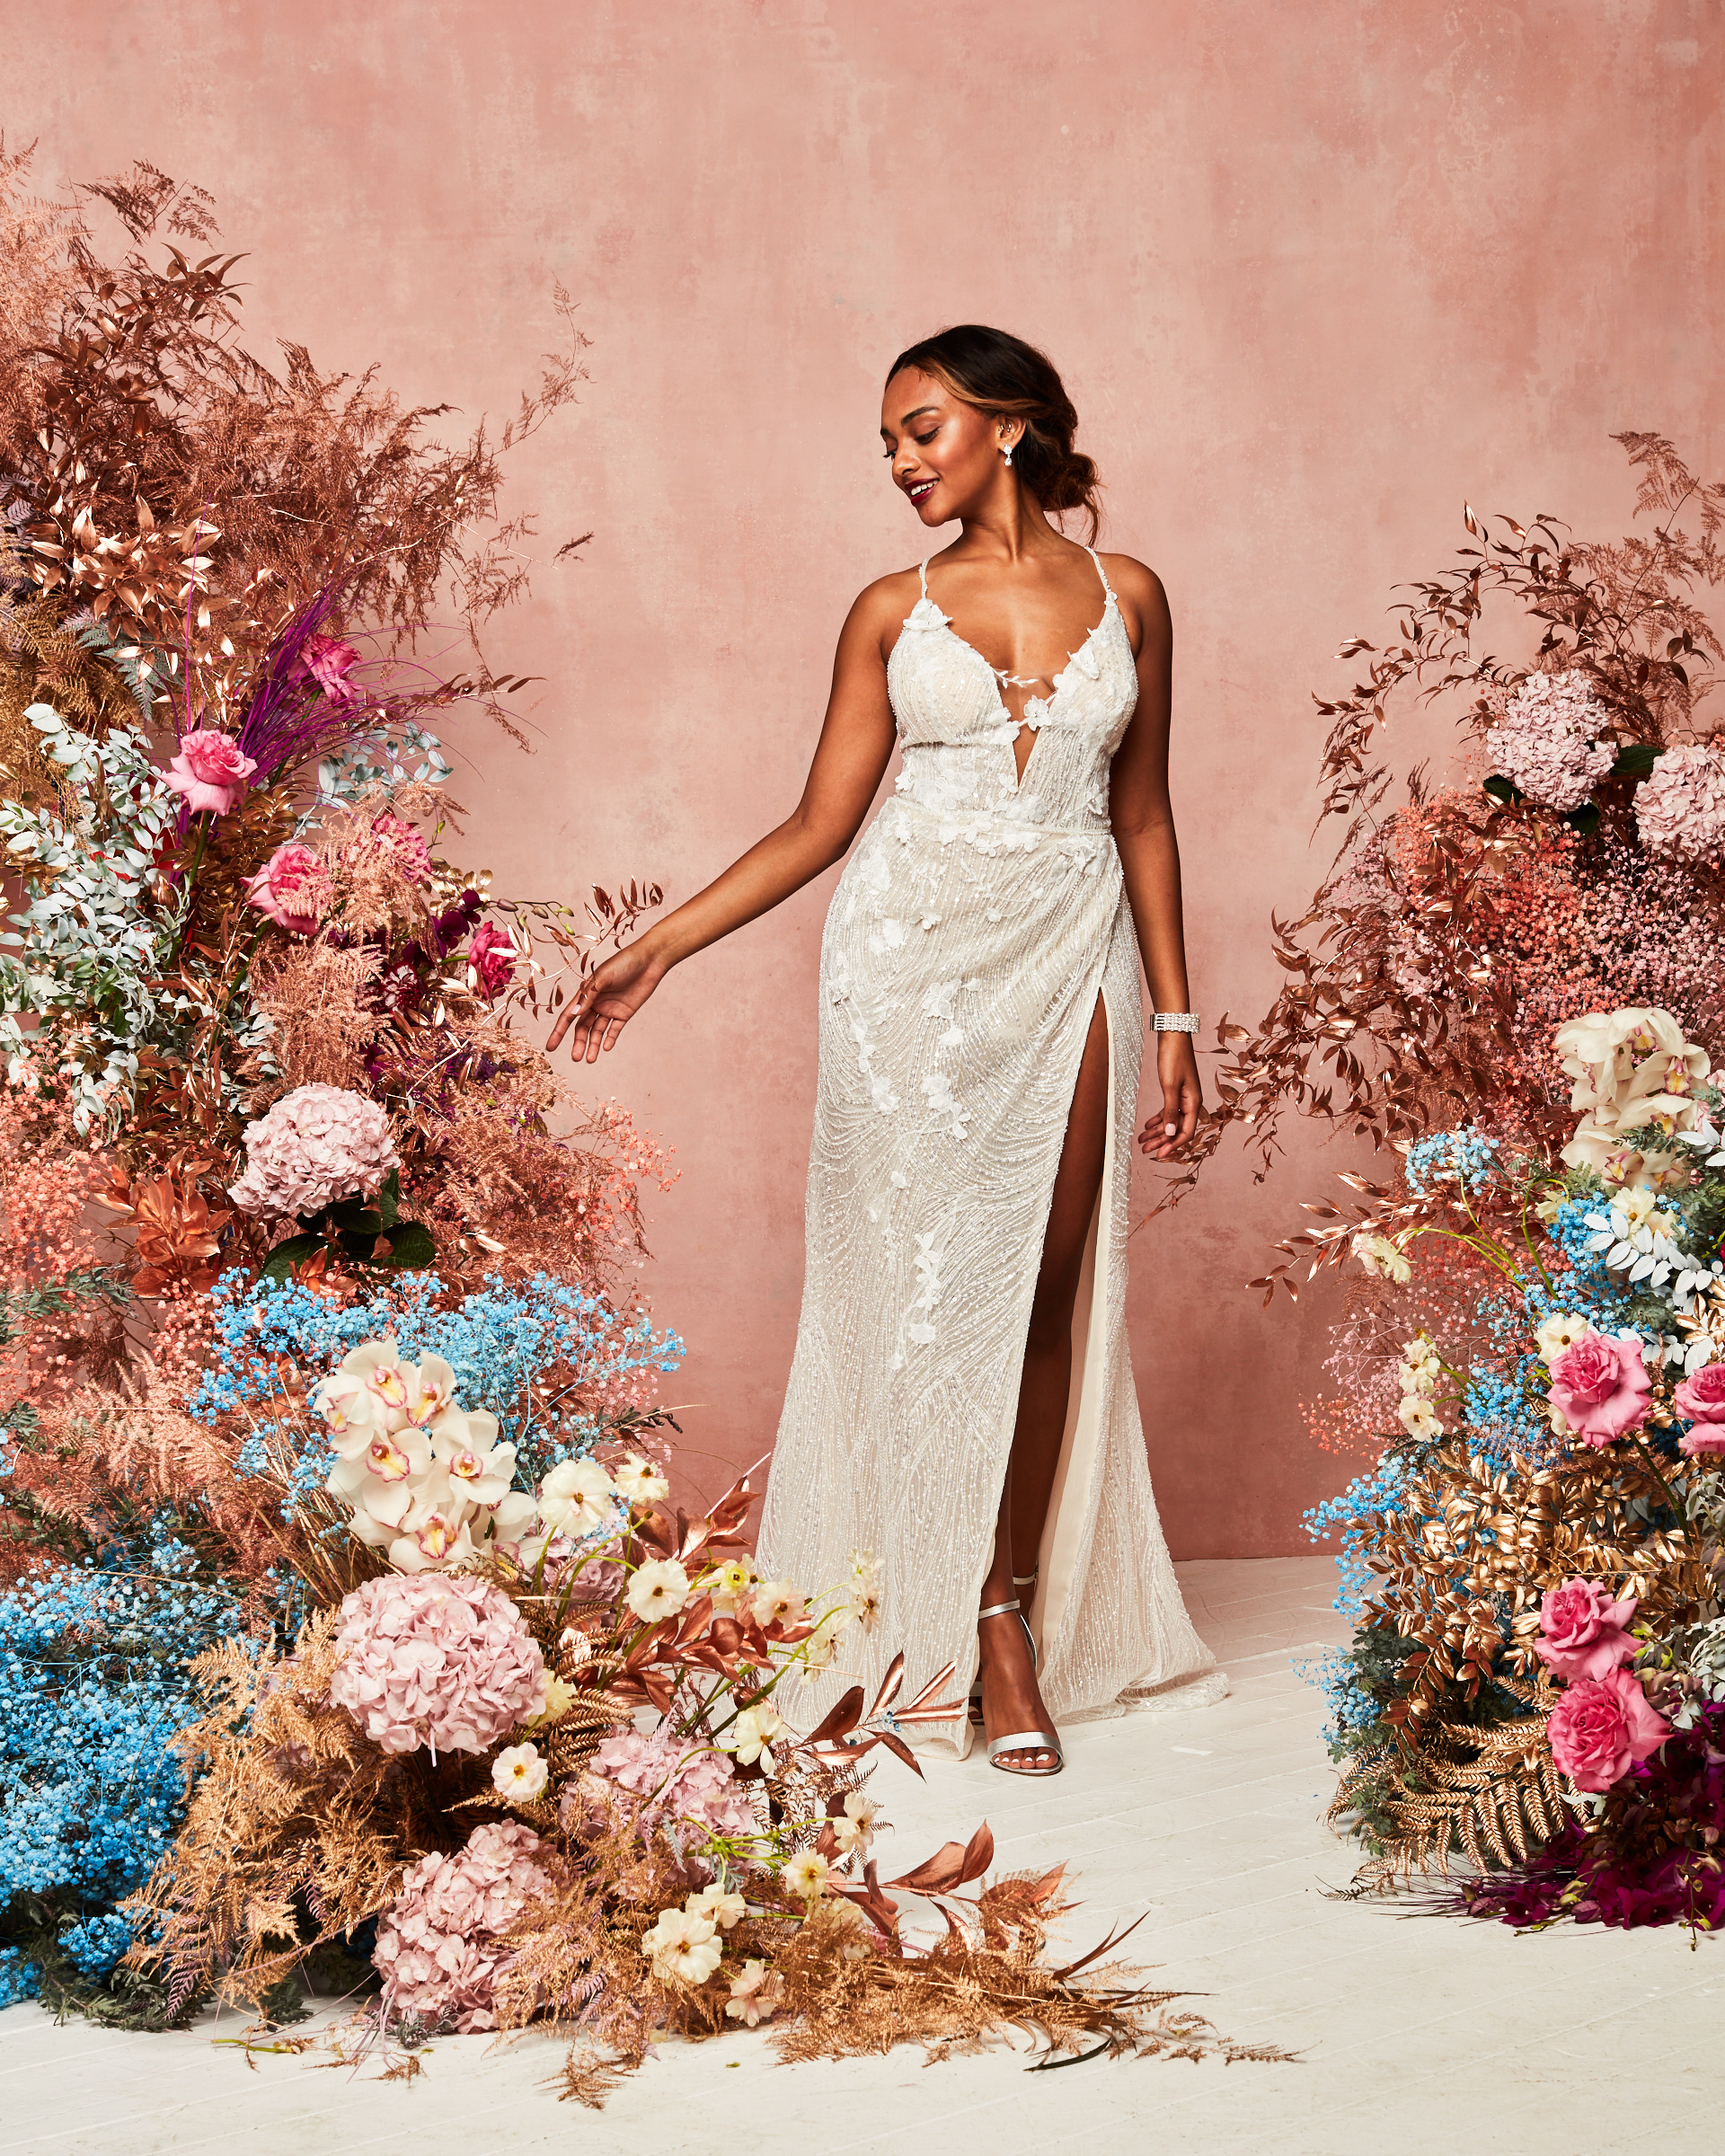 halter top gown with slit from David's Bridal Spring 2021 Collection